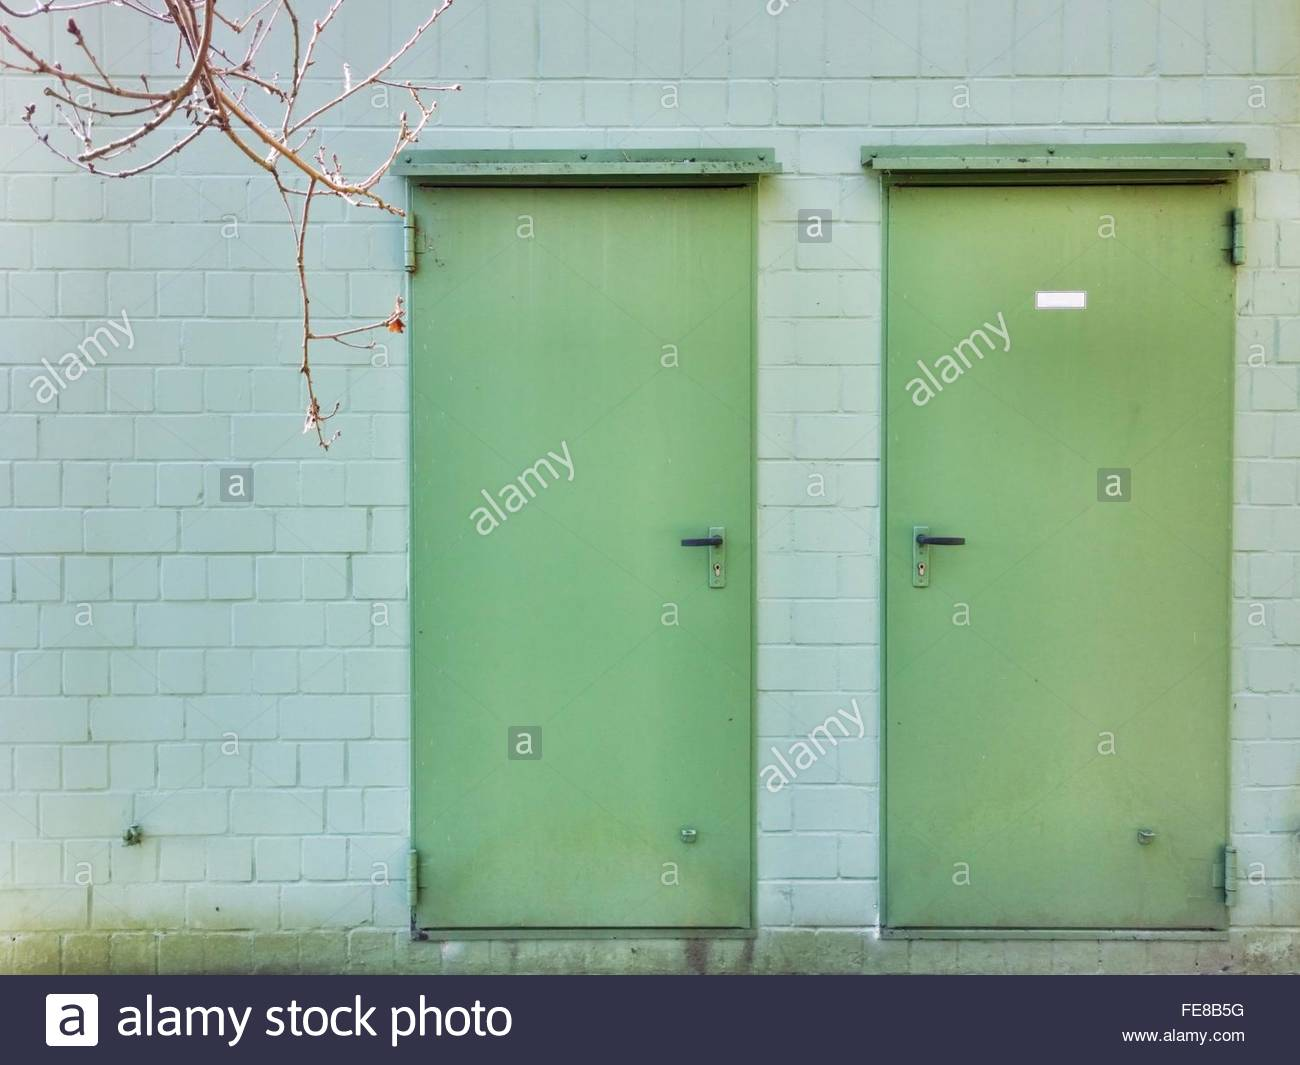 Closed Doors Of Building - Stock Image